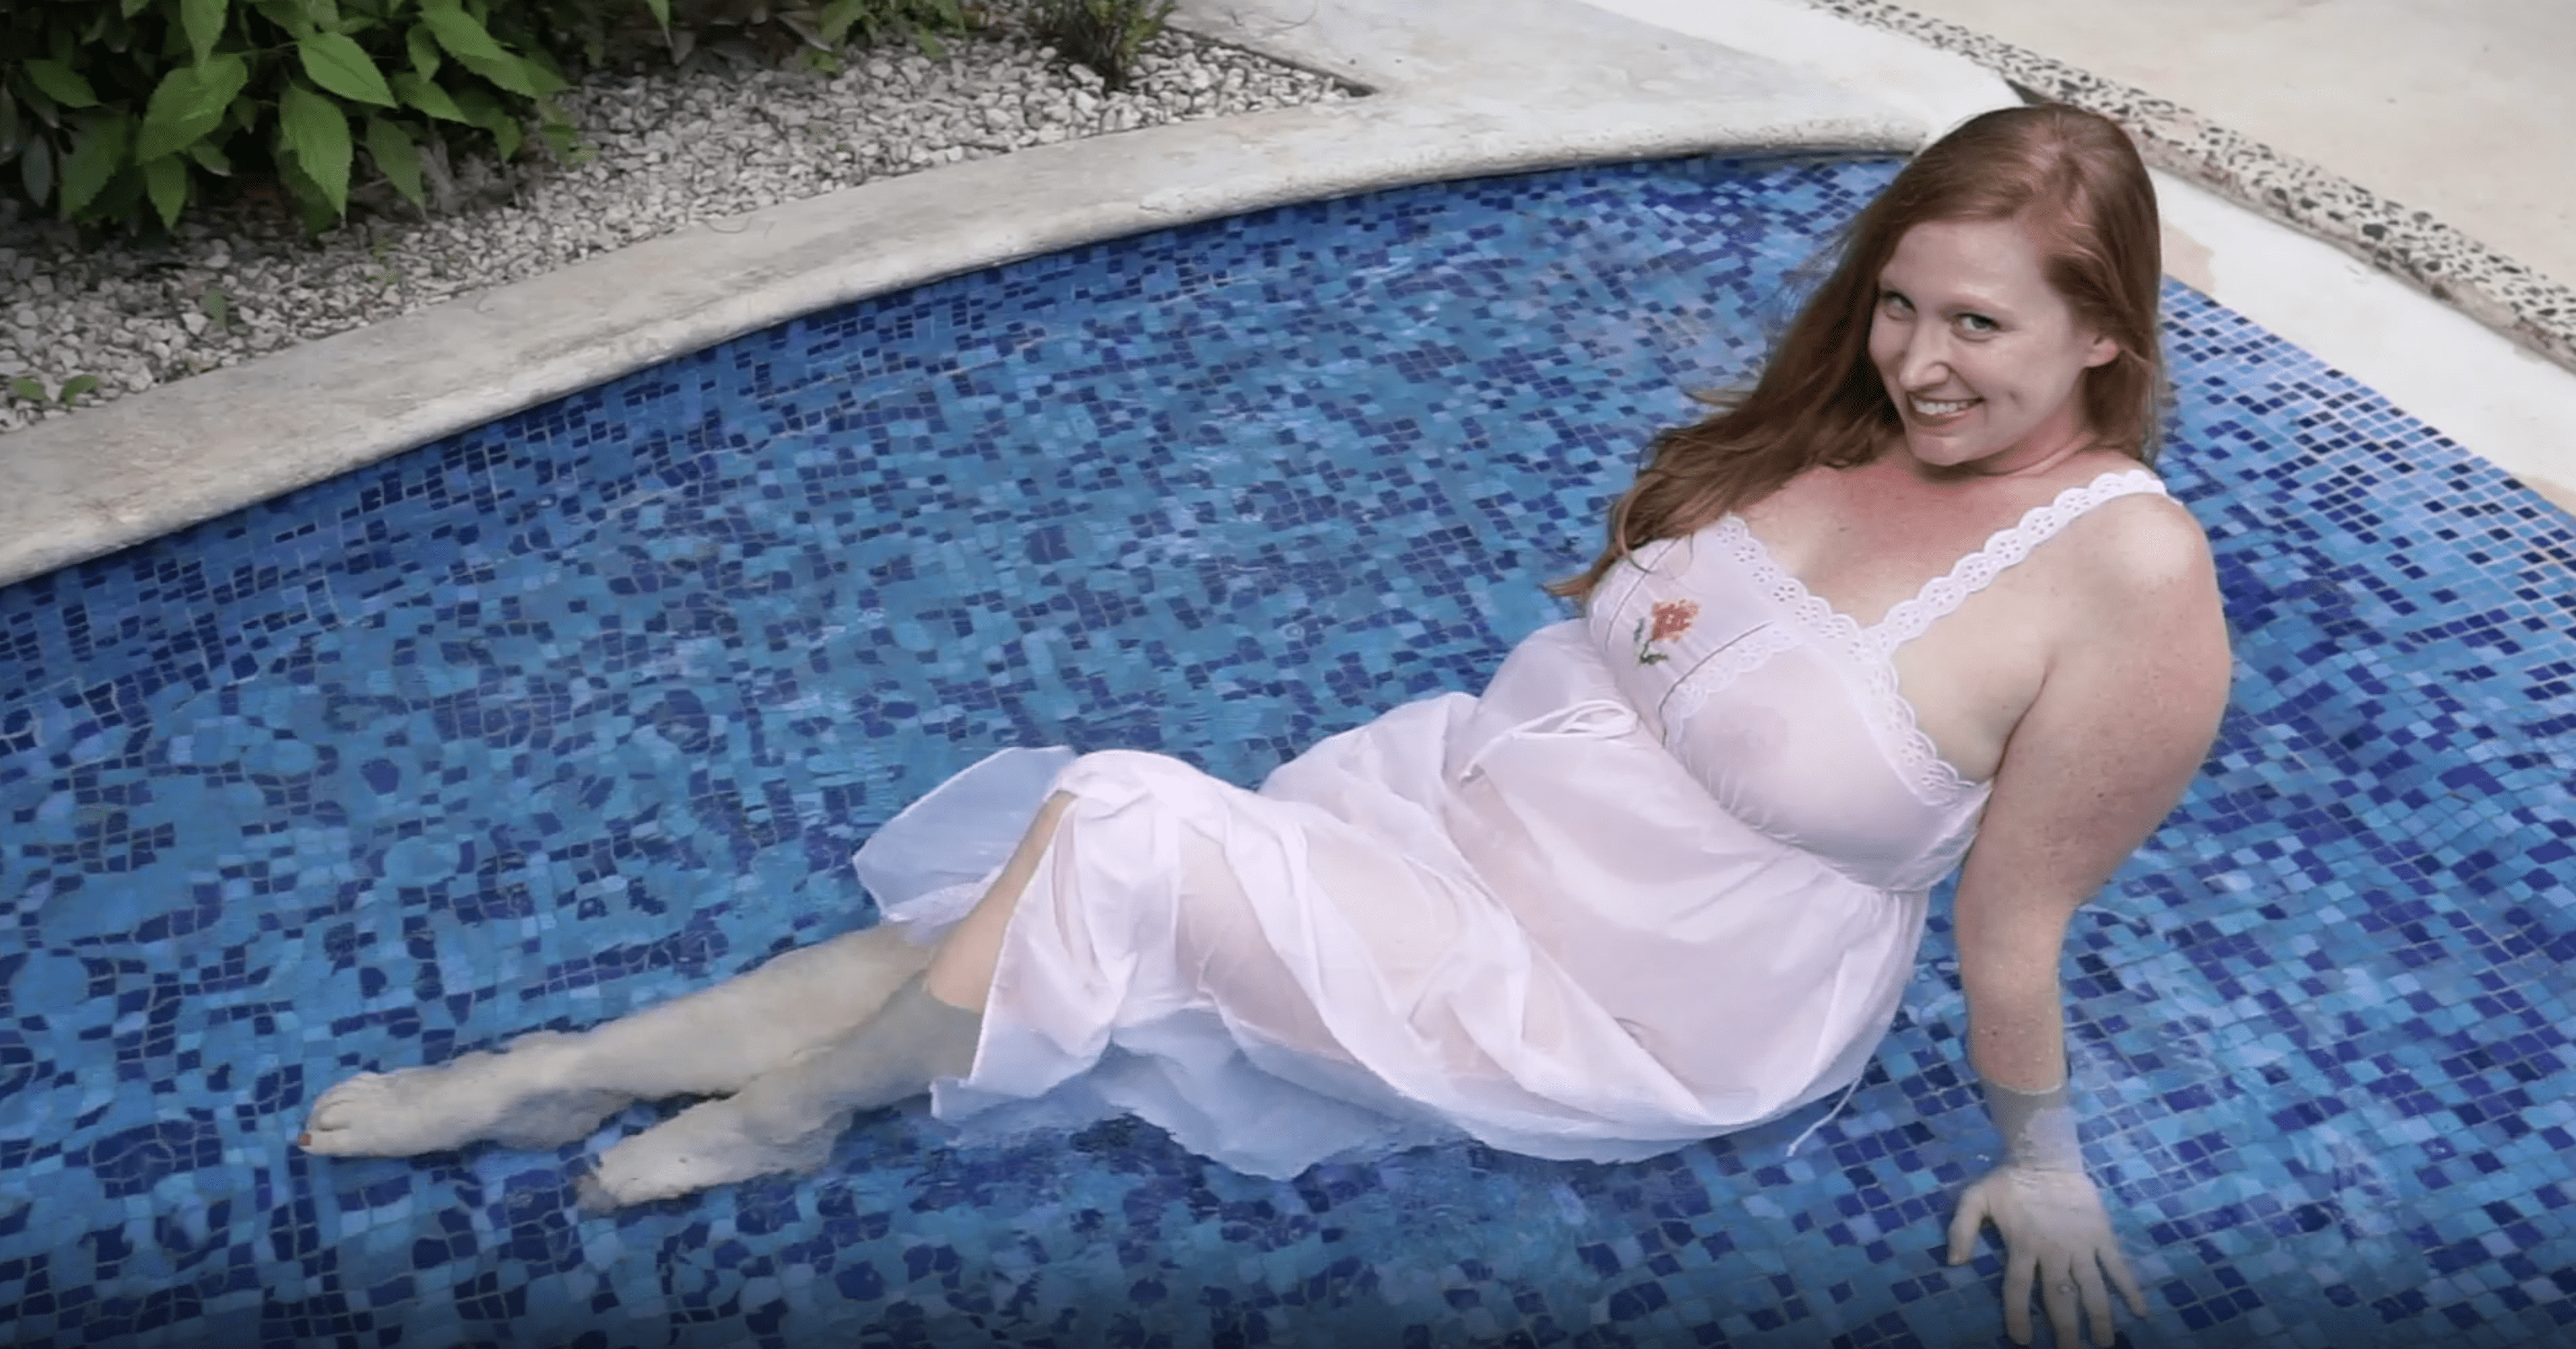 March 2021 | White Nightgown in the Pool